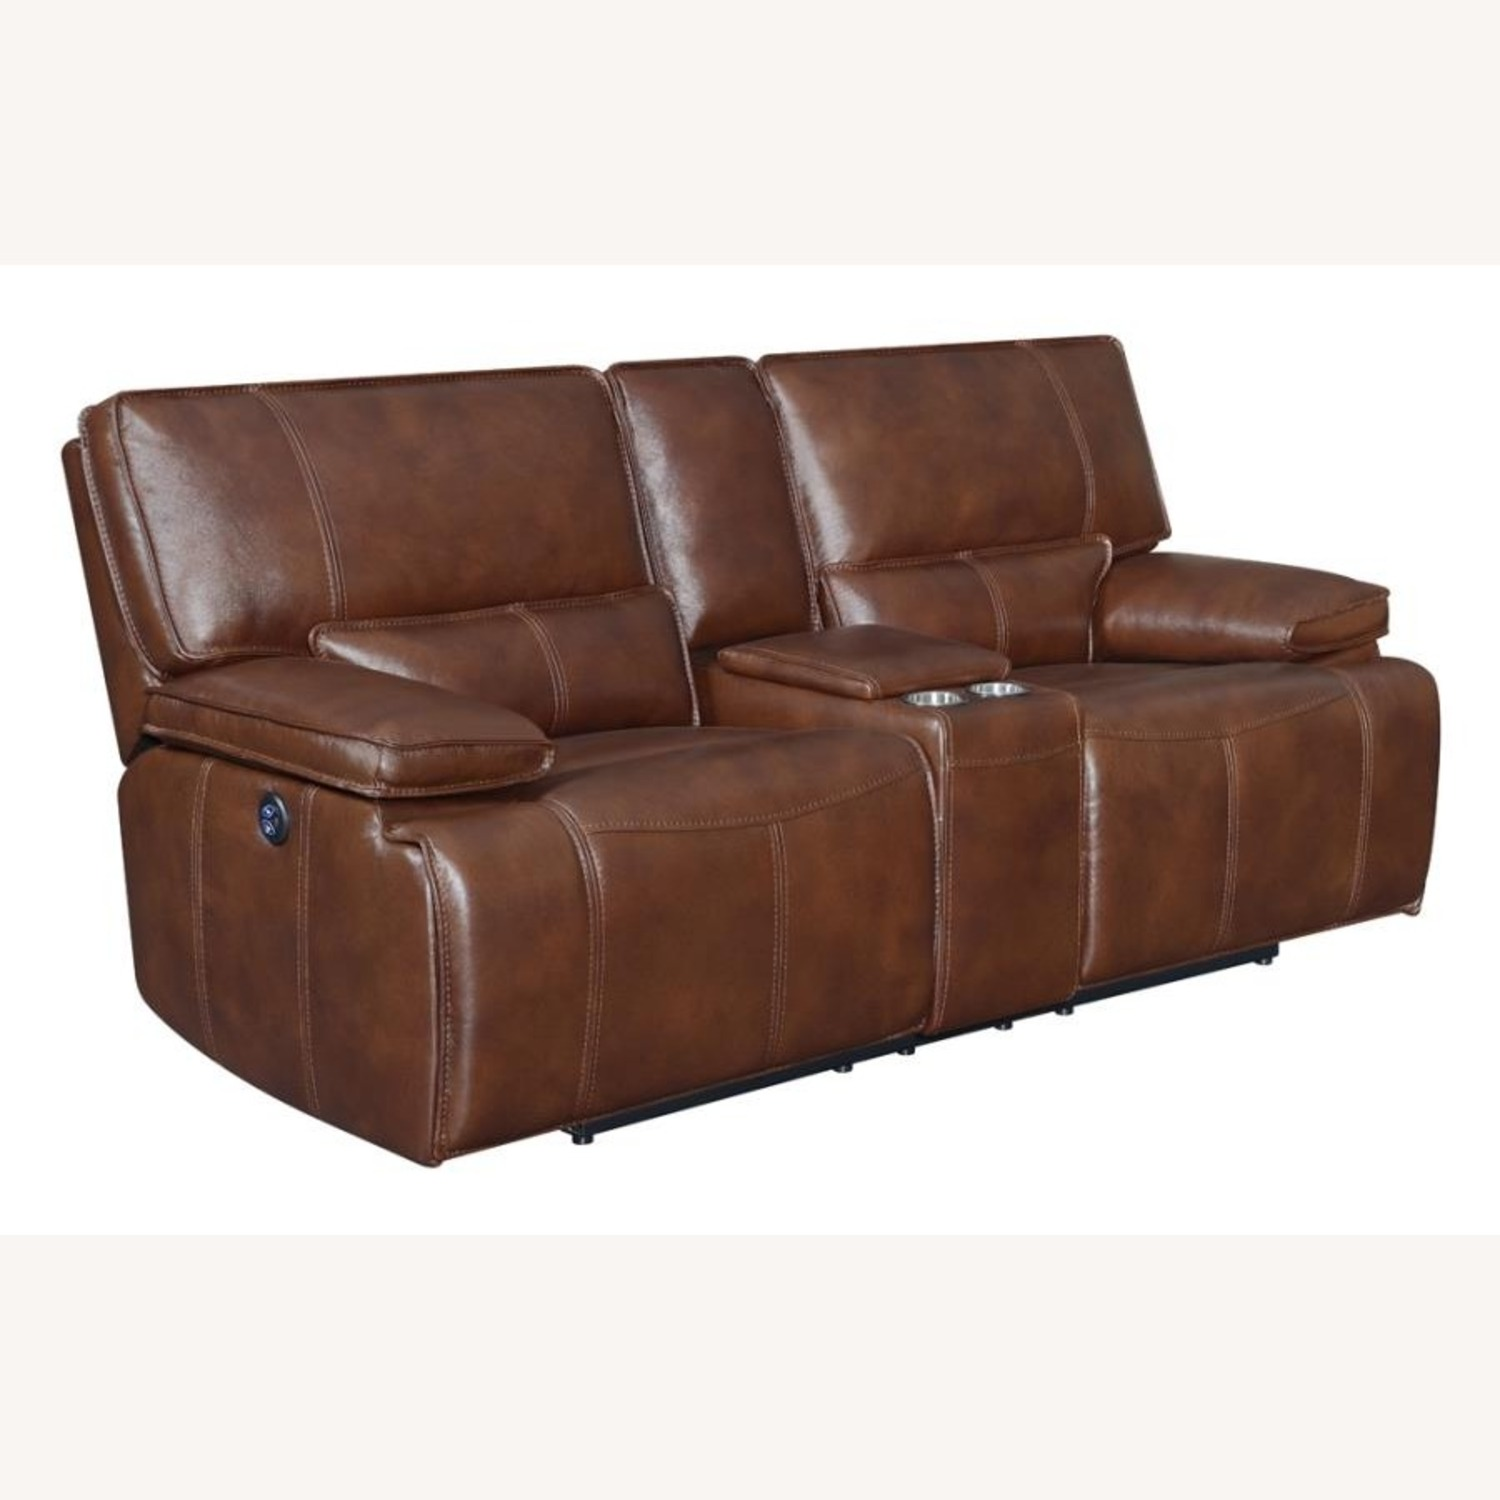 Power Loveseat In Saddle Brown W/ Console - image-0